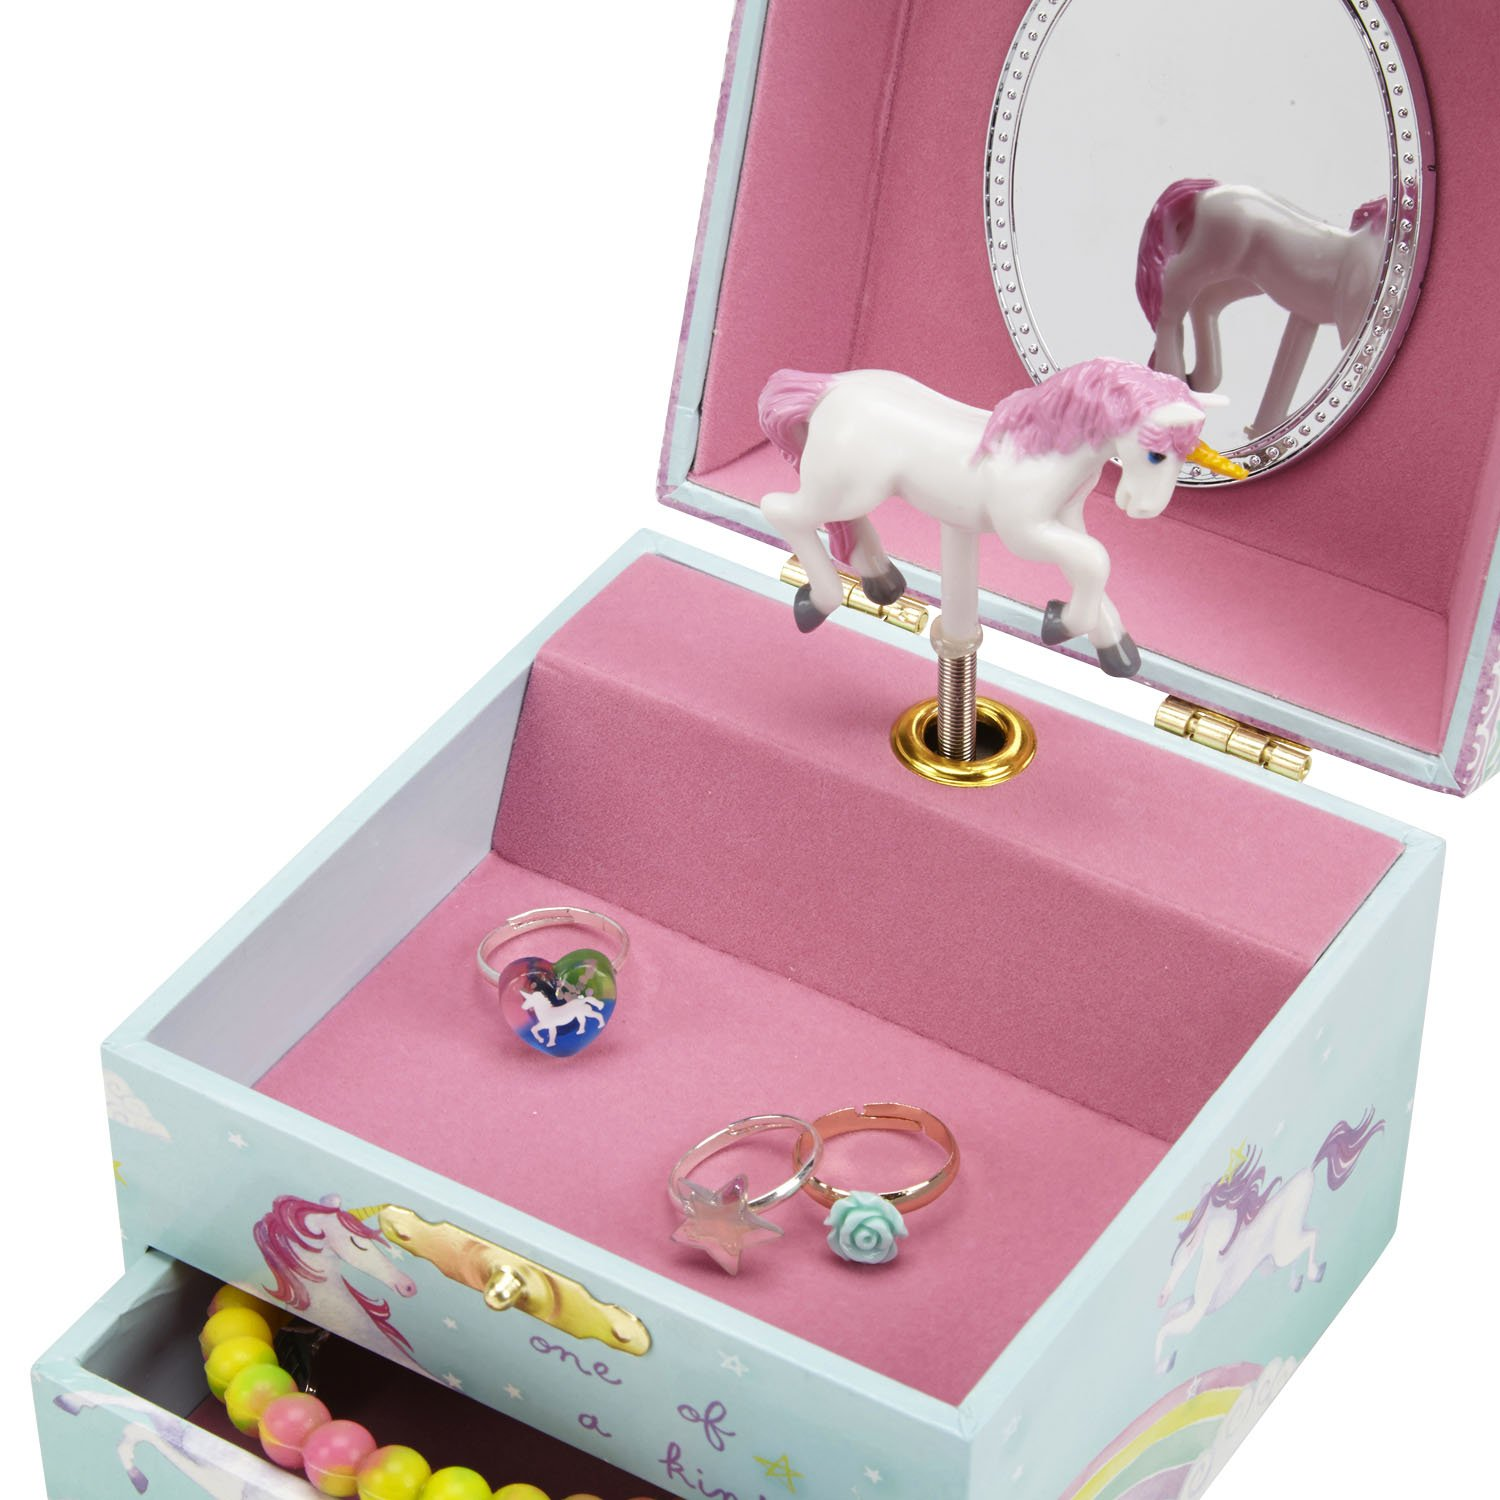 JewelKeeper Musical Jewelry Box, Unicorn Rainbow Design with Pullout Drawer, The Unicorn Tune by JewelKeeper (Image #3)